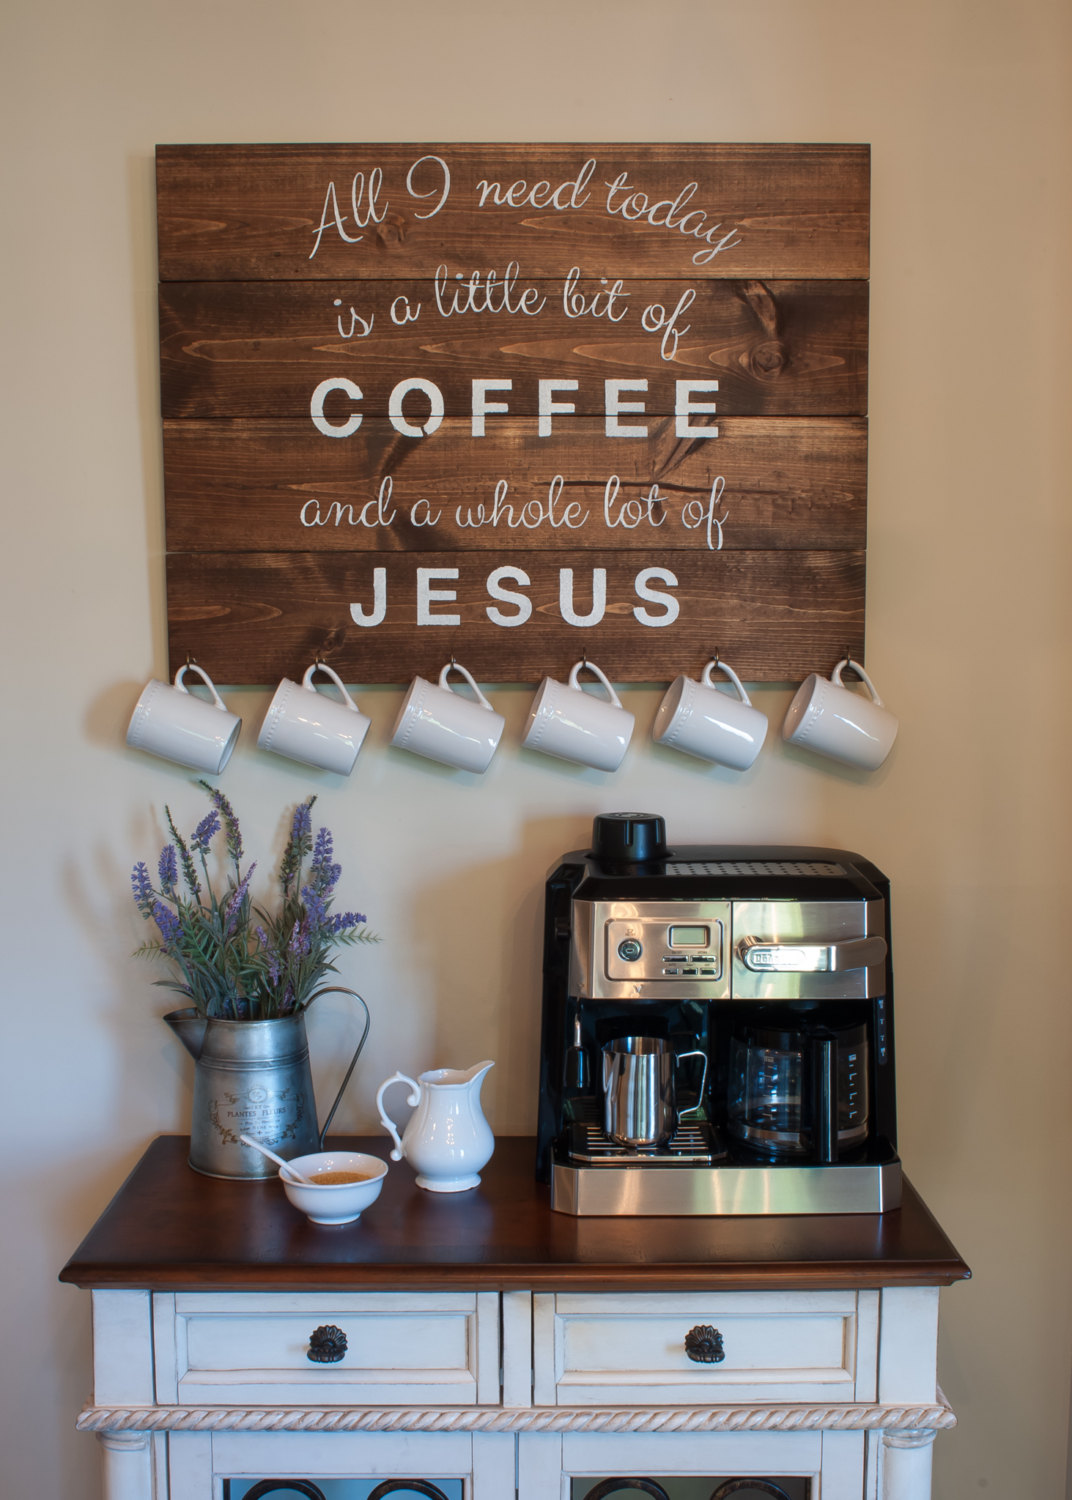 1. Getting Your Java With Jesus